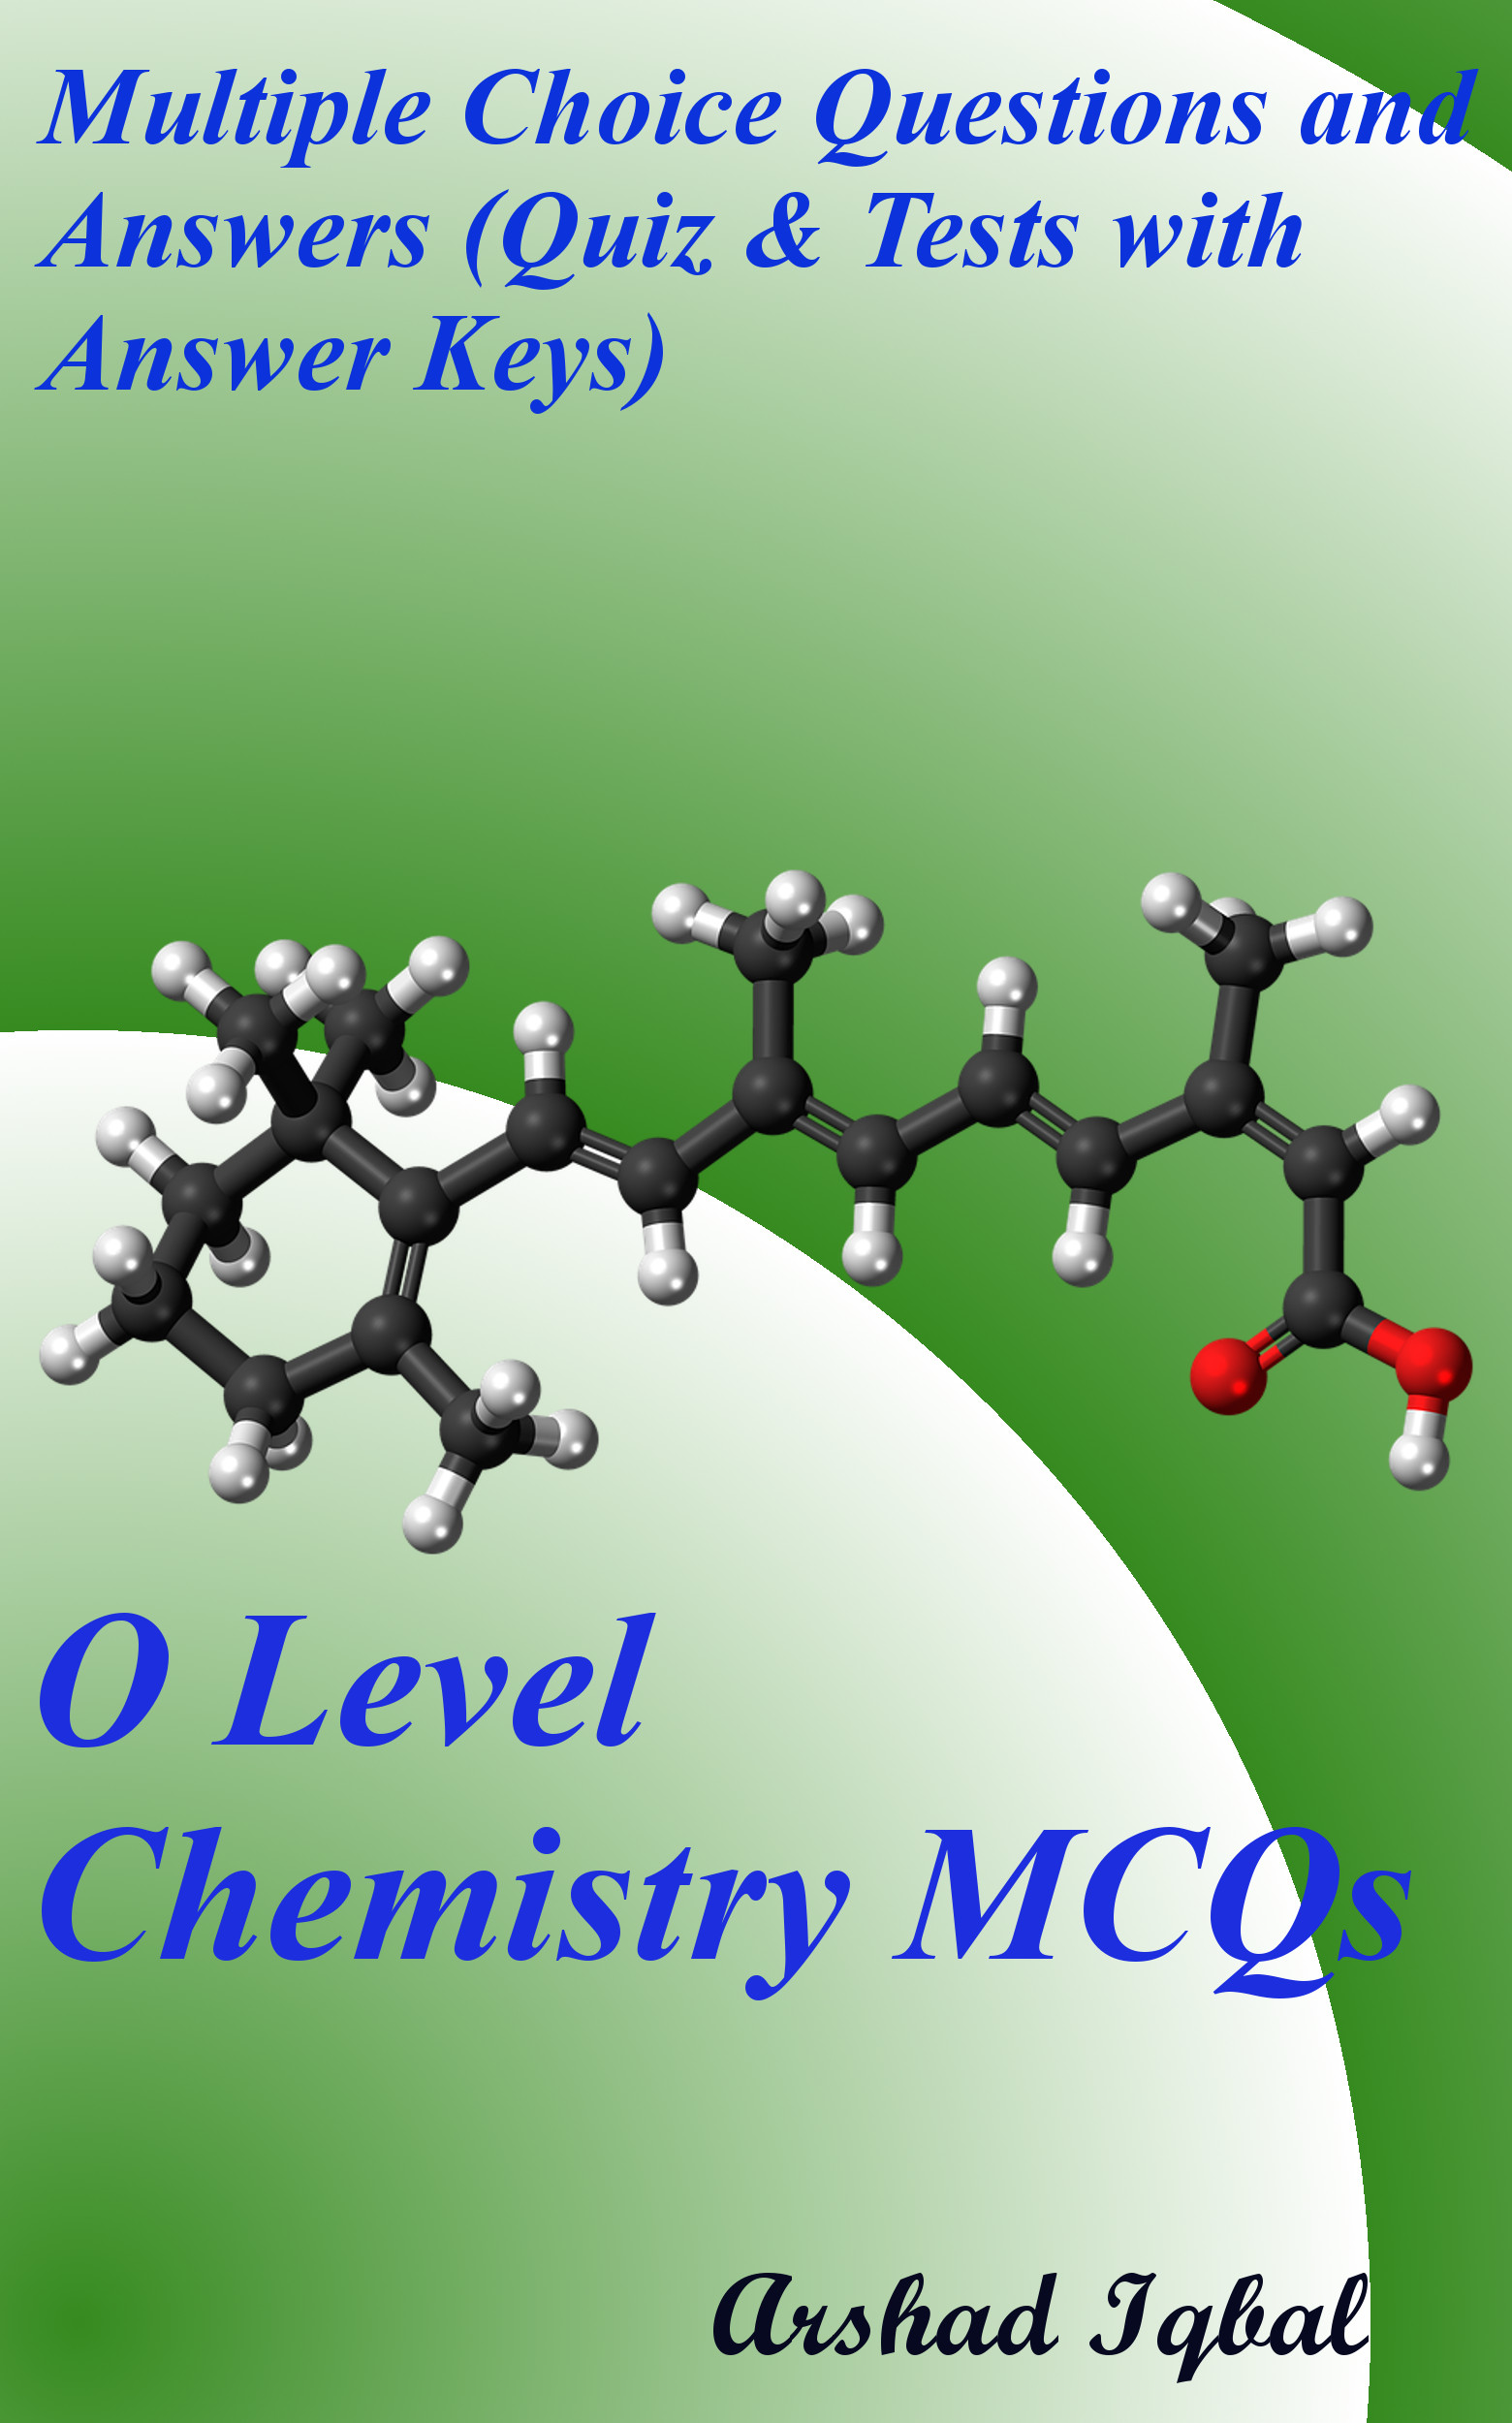 O Level Chemistry Multiple Choice Questions and Answers (MCQs): Quizzes & Practice Tests with Answer Key